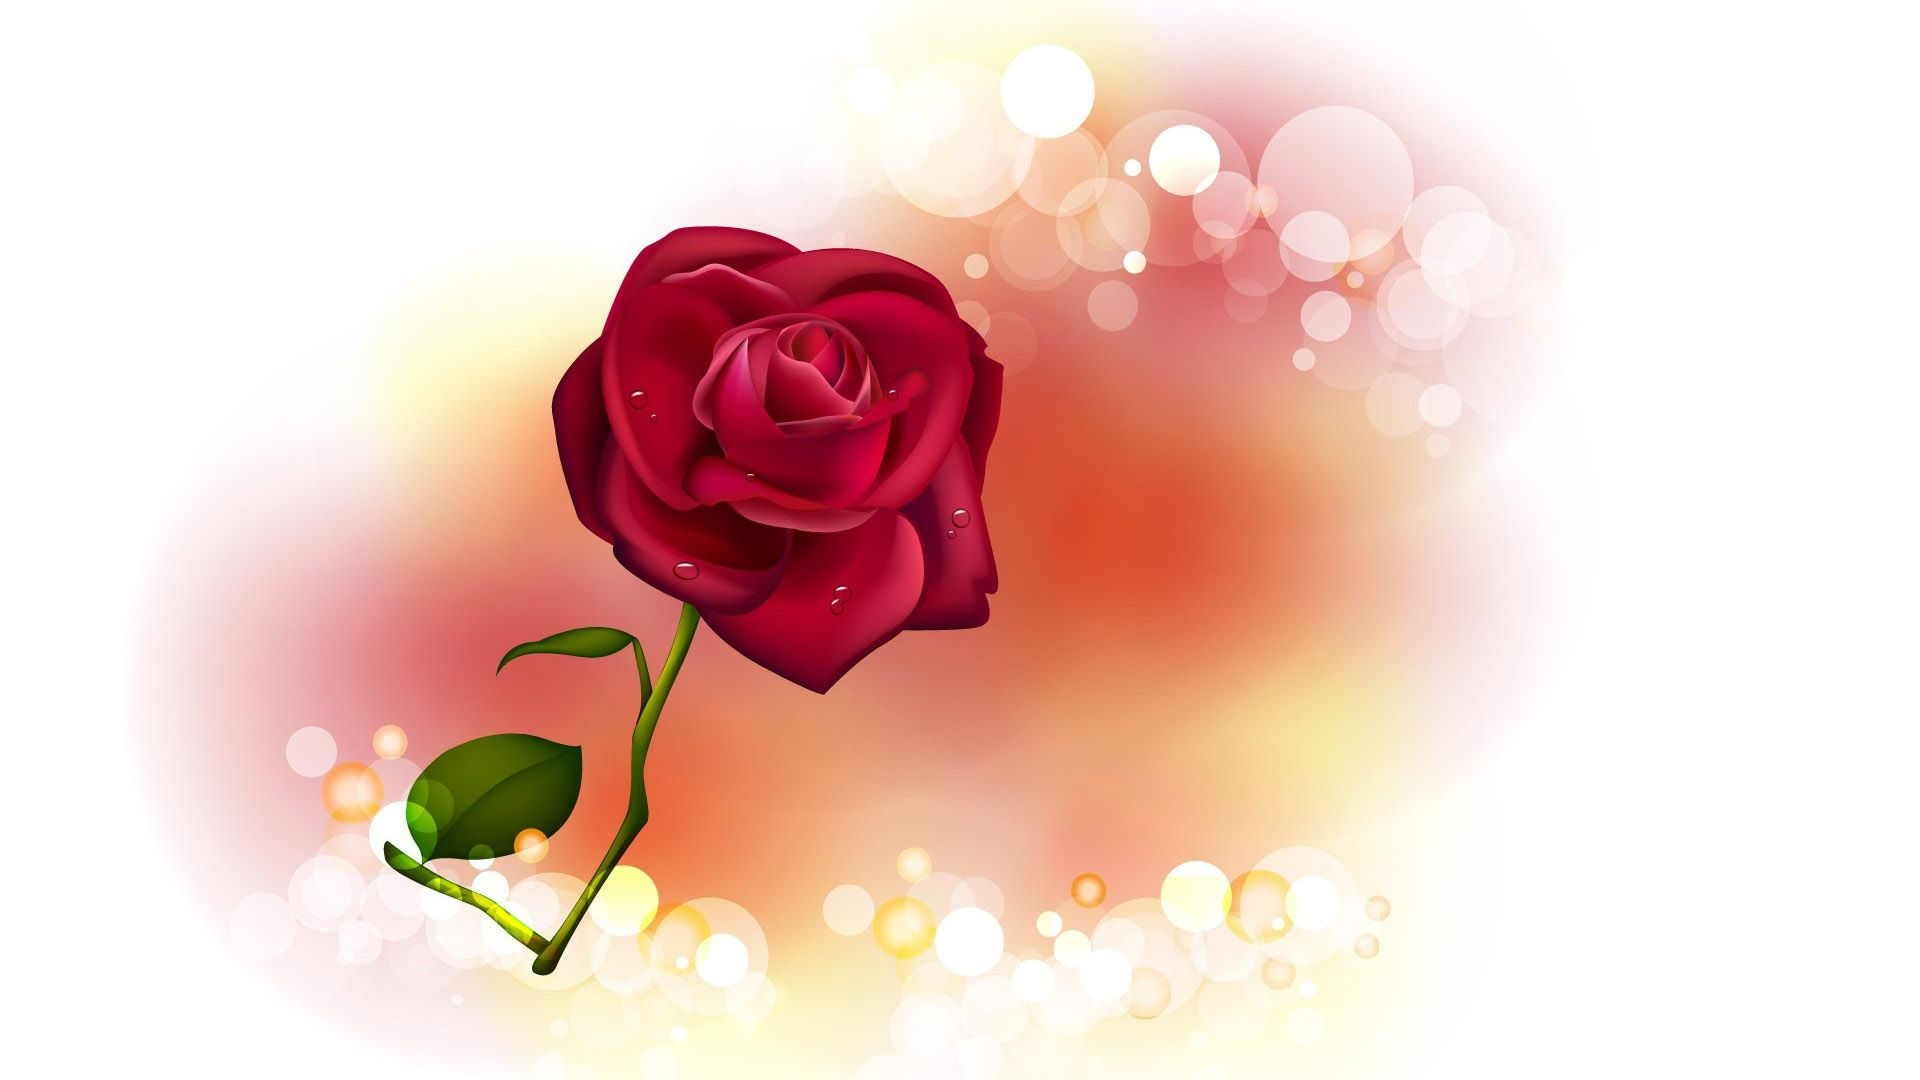 Red Rose Wallpapers Red Flowers Hd Pictures One Hd Wallpaper Rose Flower Wallpaper Rose Flower Hd Red Roses Wallpaper